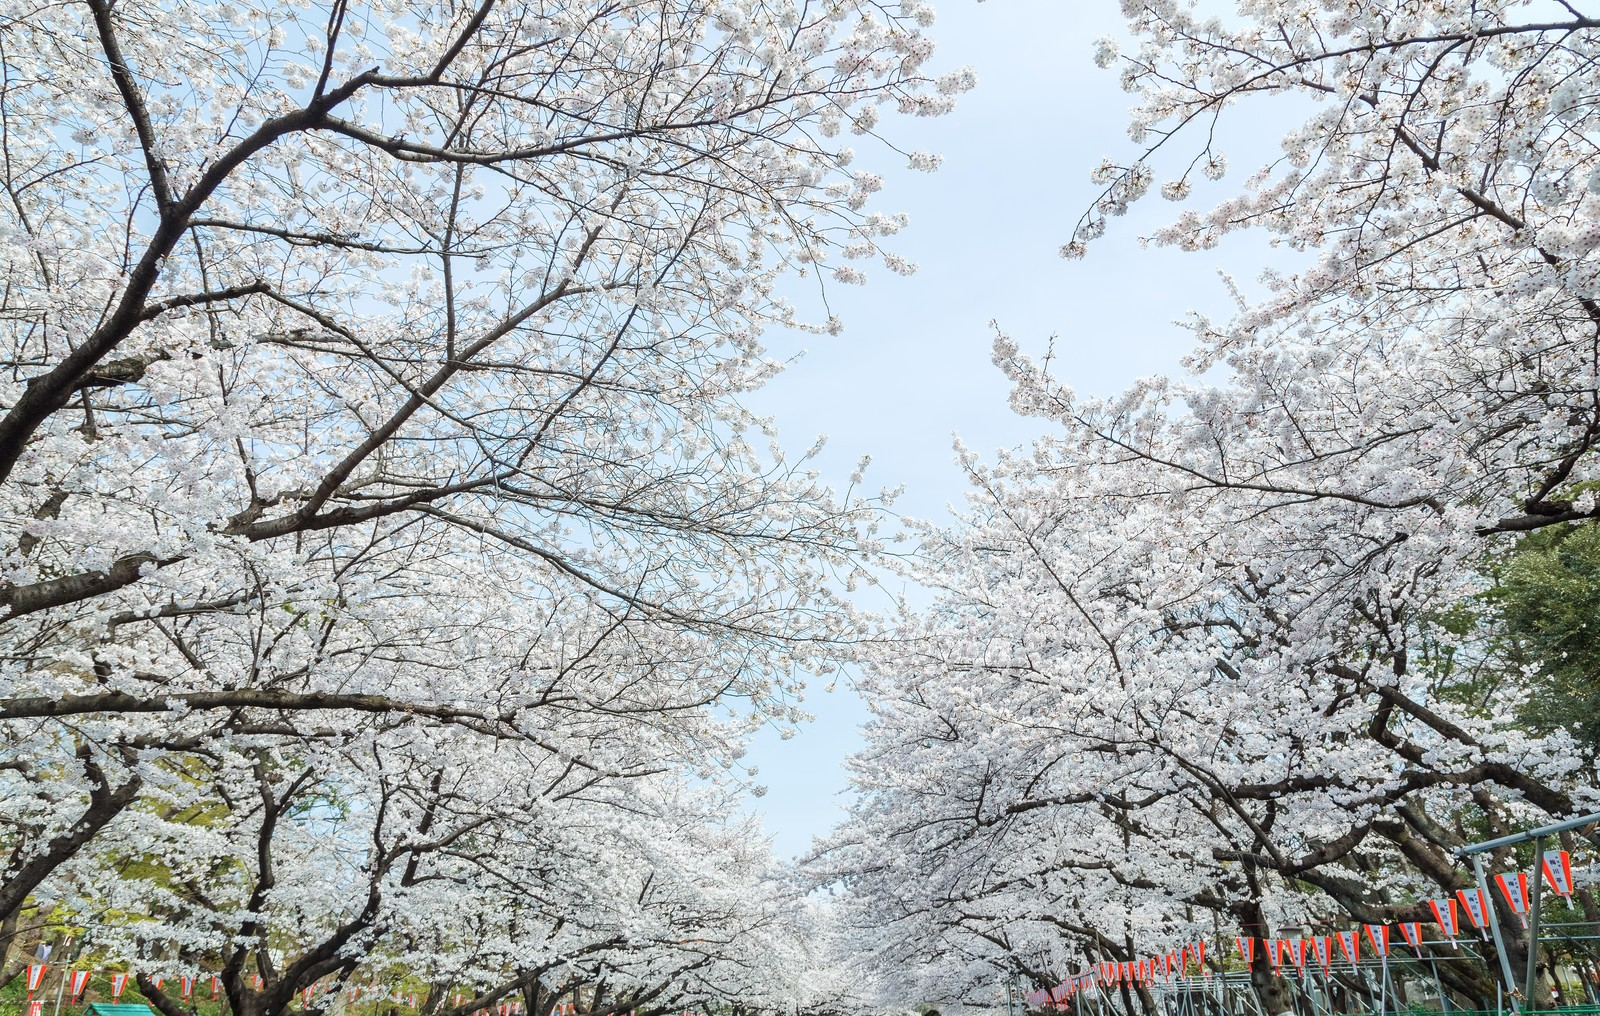 Cherry blossoms blooming at Ueno Park